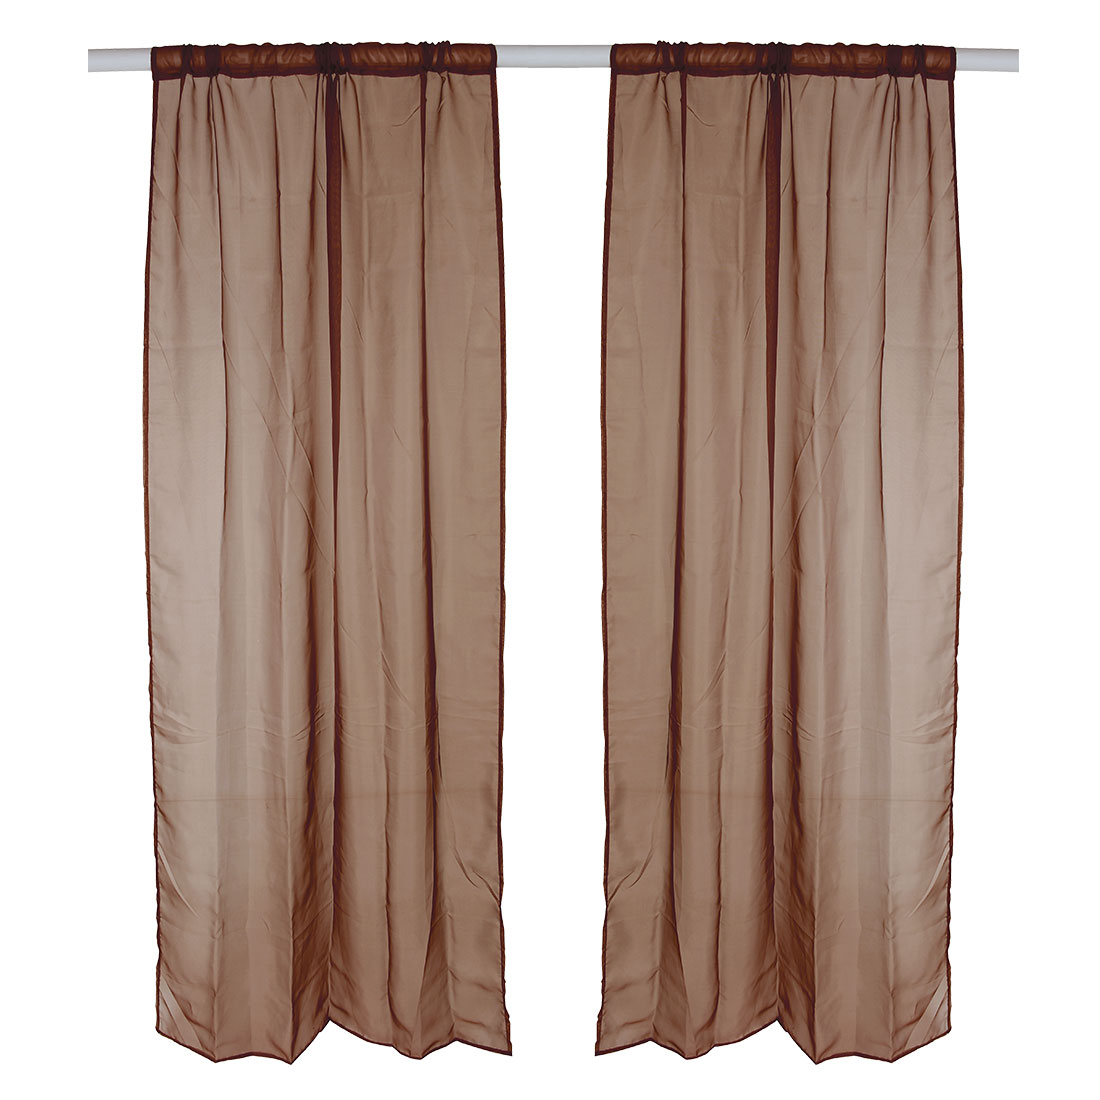 Home Polyester Background Divider Panel Window Sheer Curtain Brown 100 x 200cm